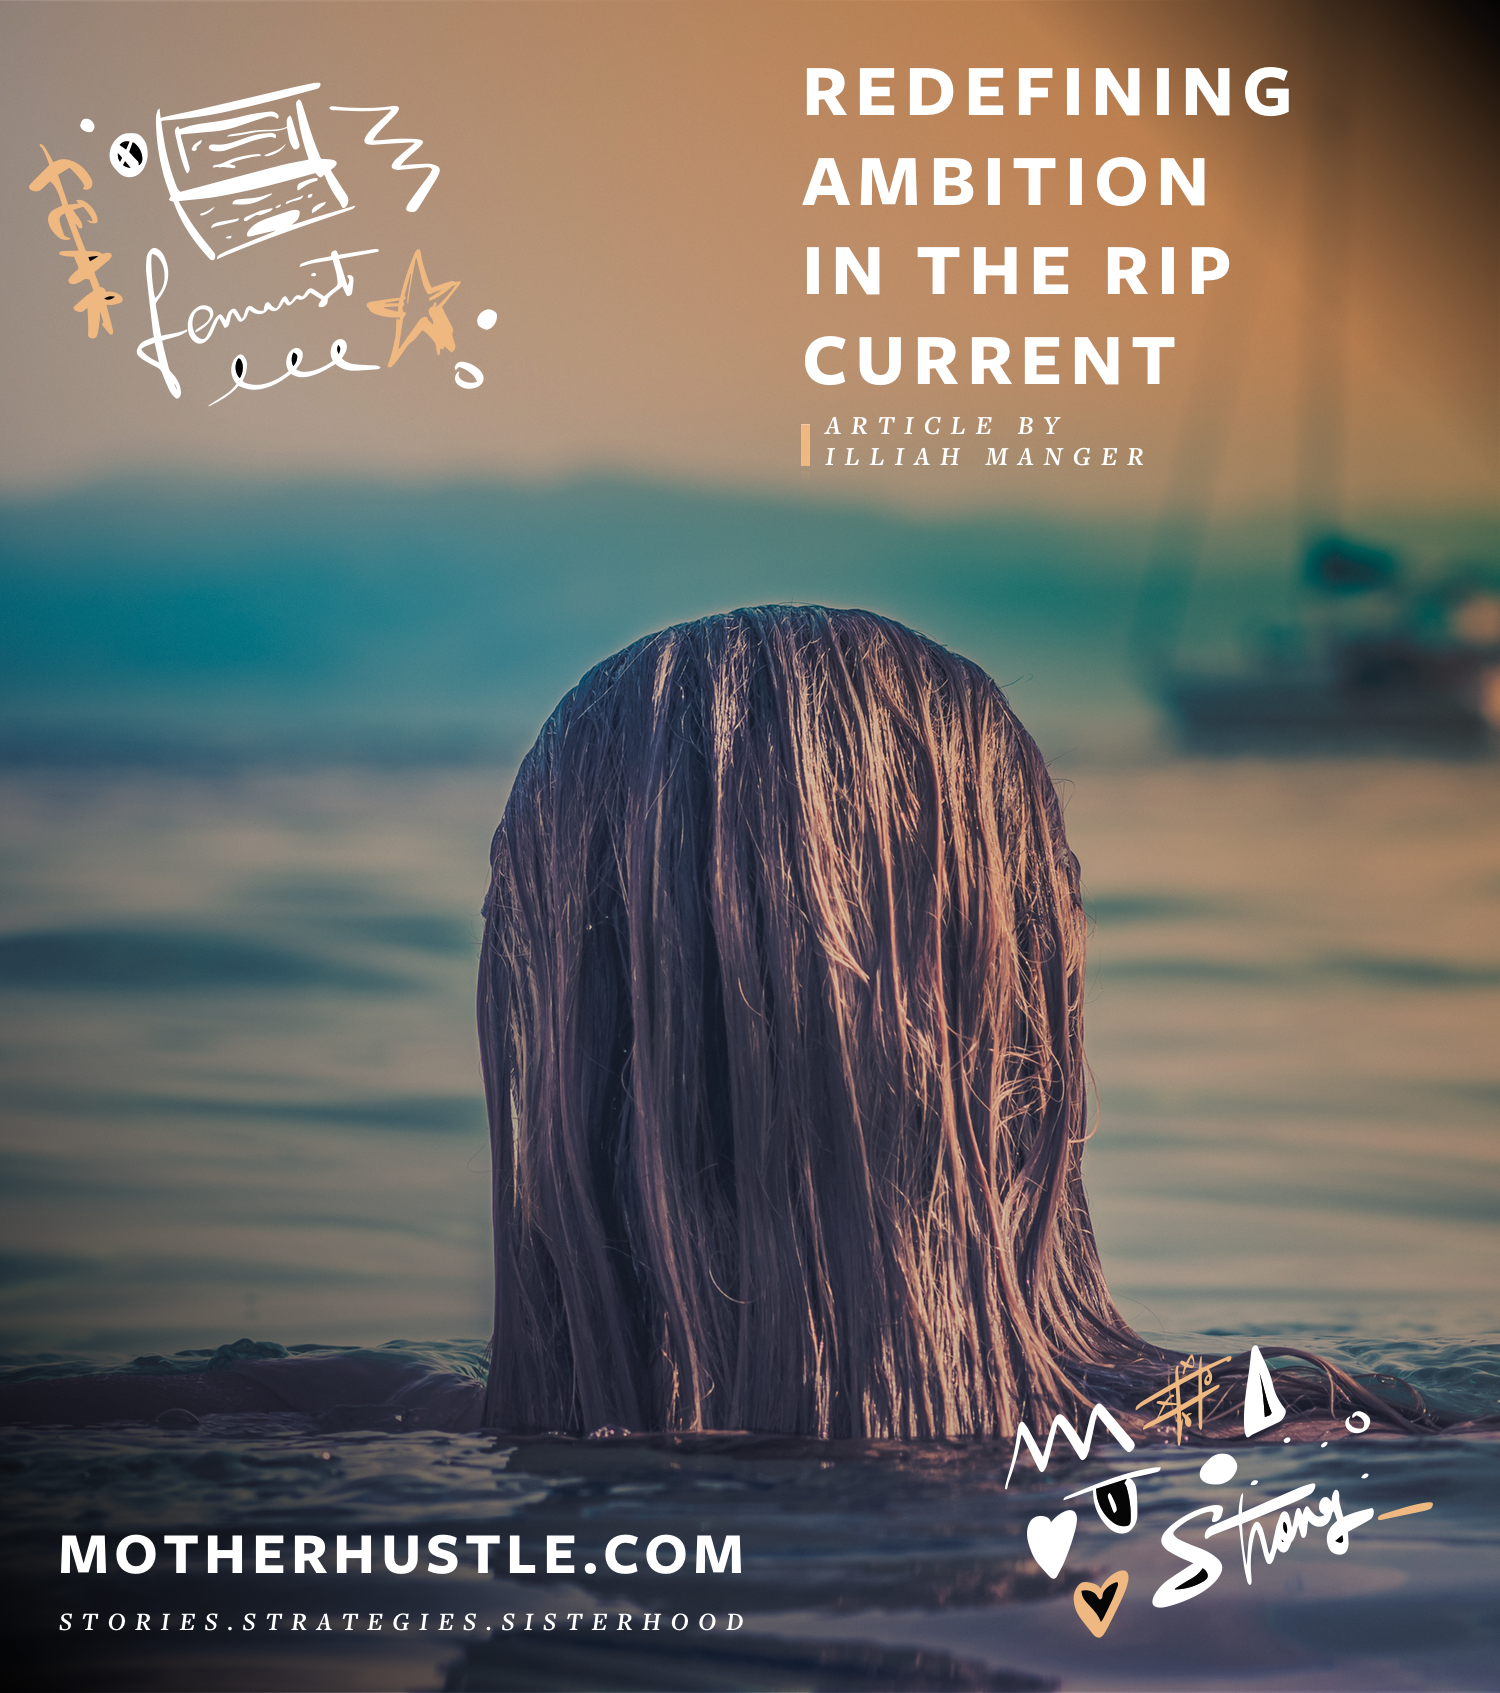 Redefining Ambition in the Rip Current - Illiah Manger MotherHustle